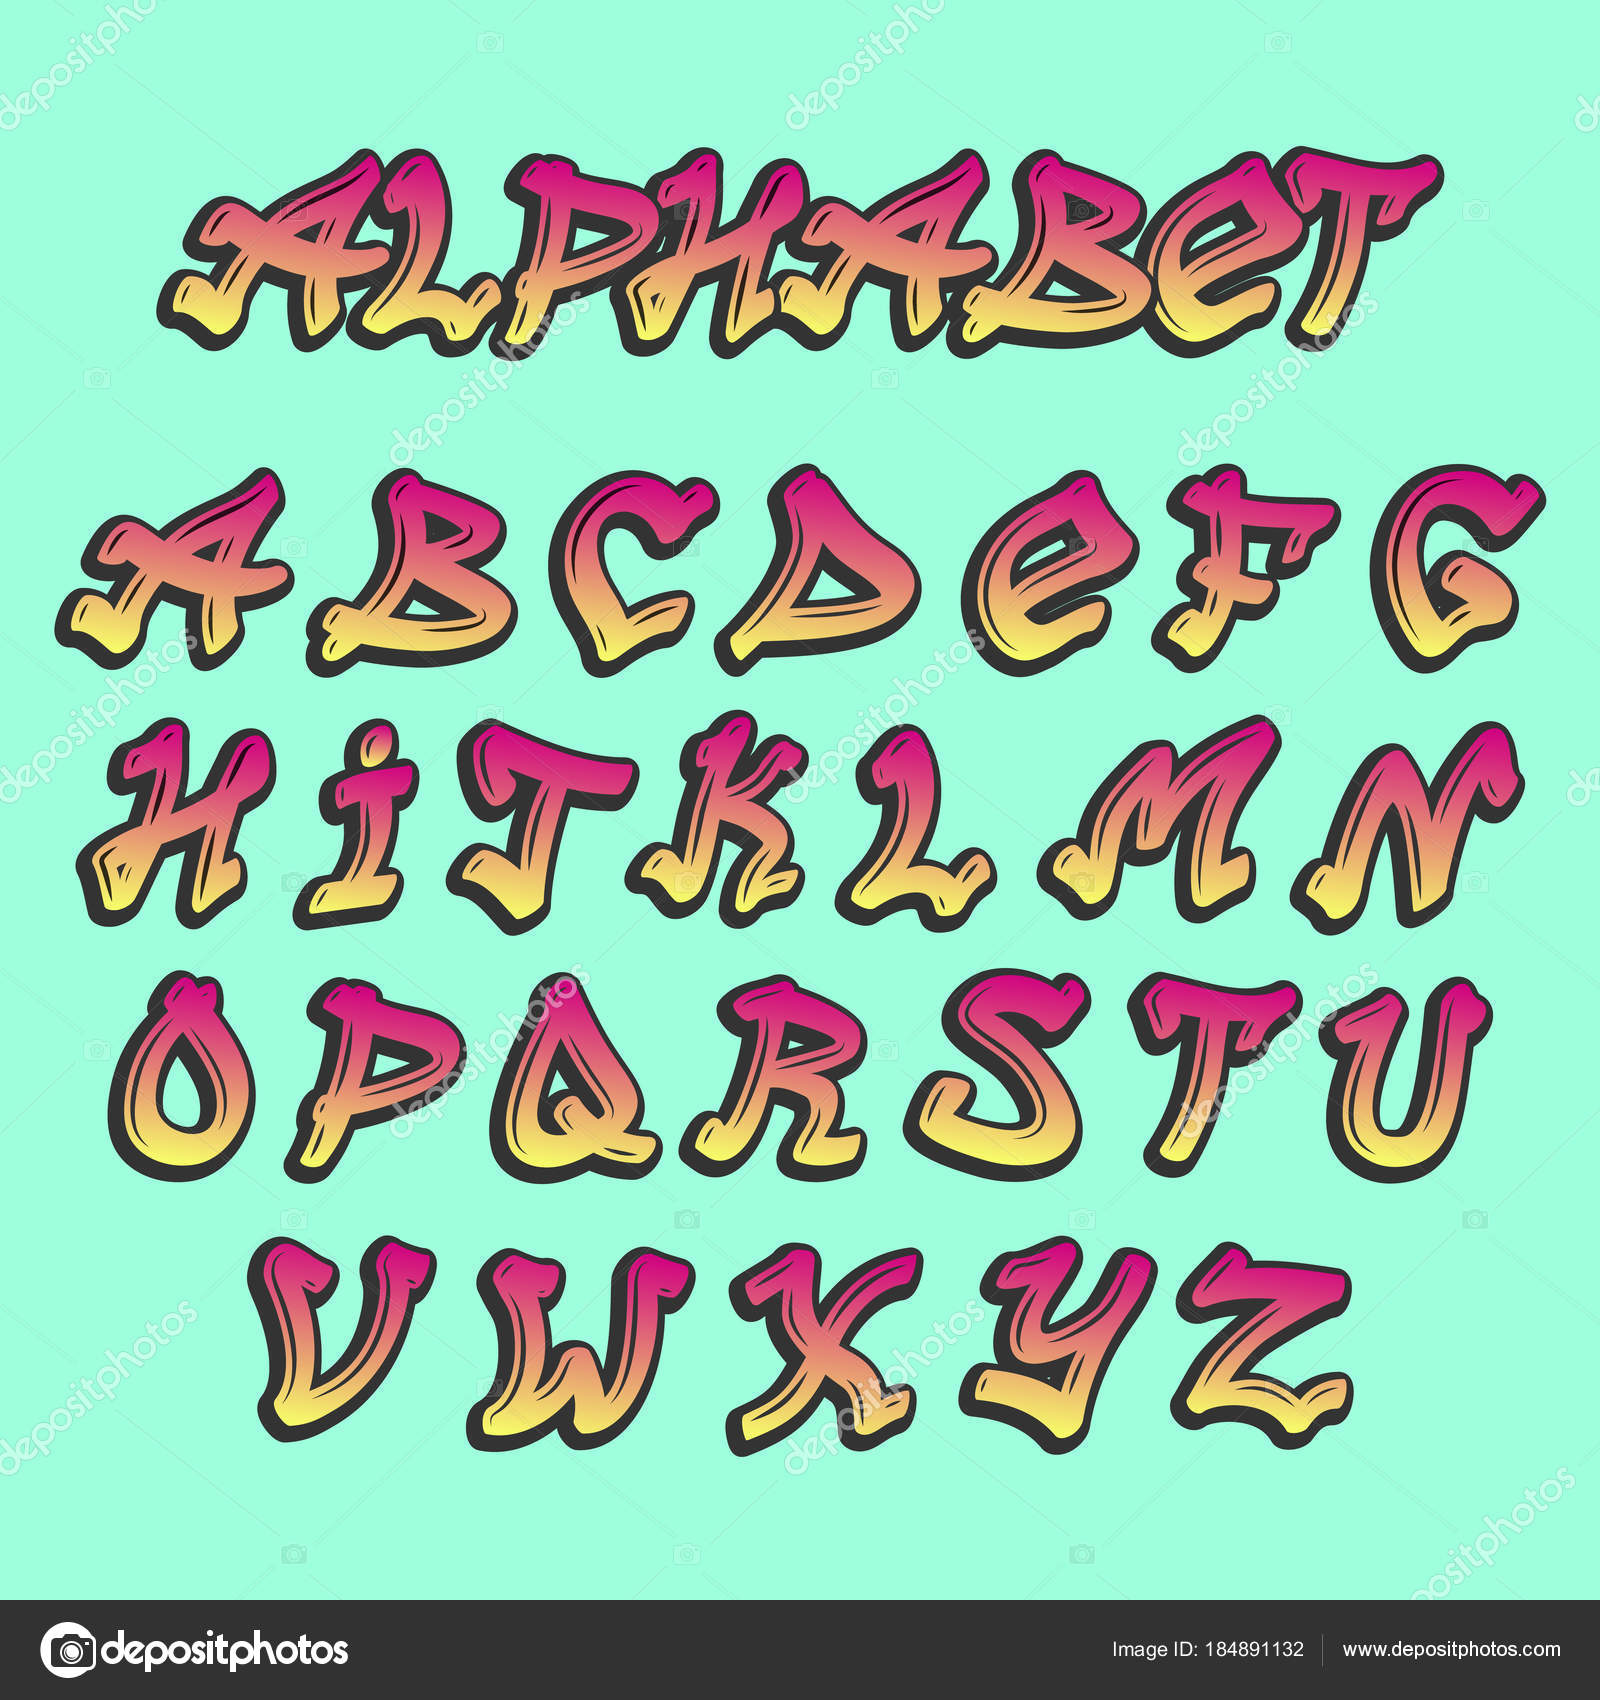 Alphabet graffity vector alphabetical font abc by brush stroke with letters and numbers or grunge alphabetic typography illustration isolated on background